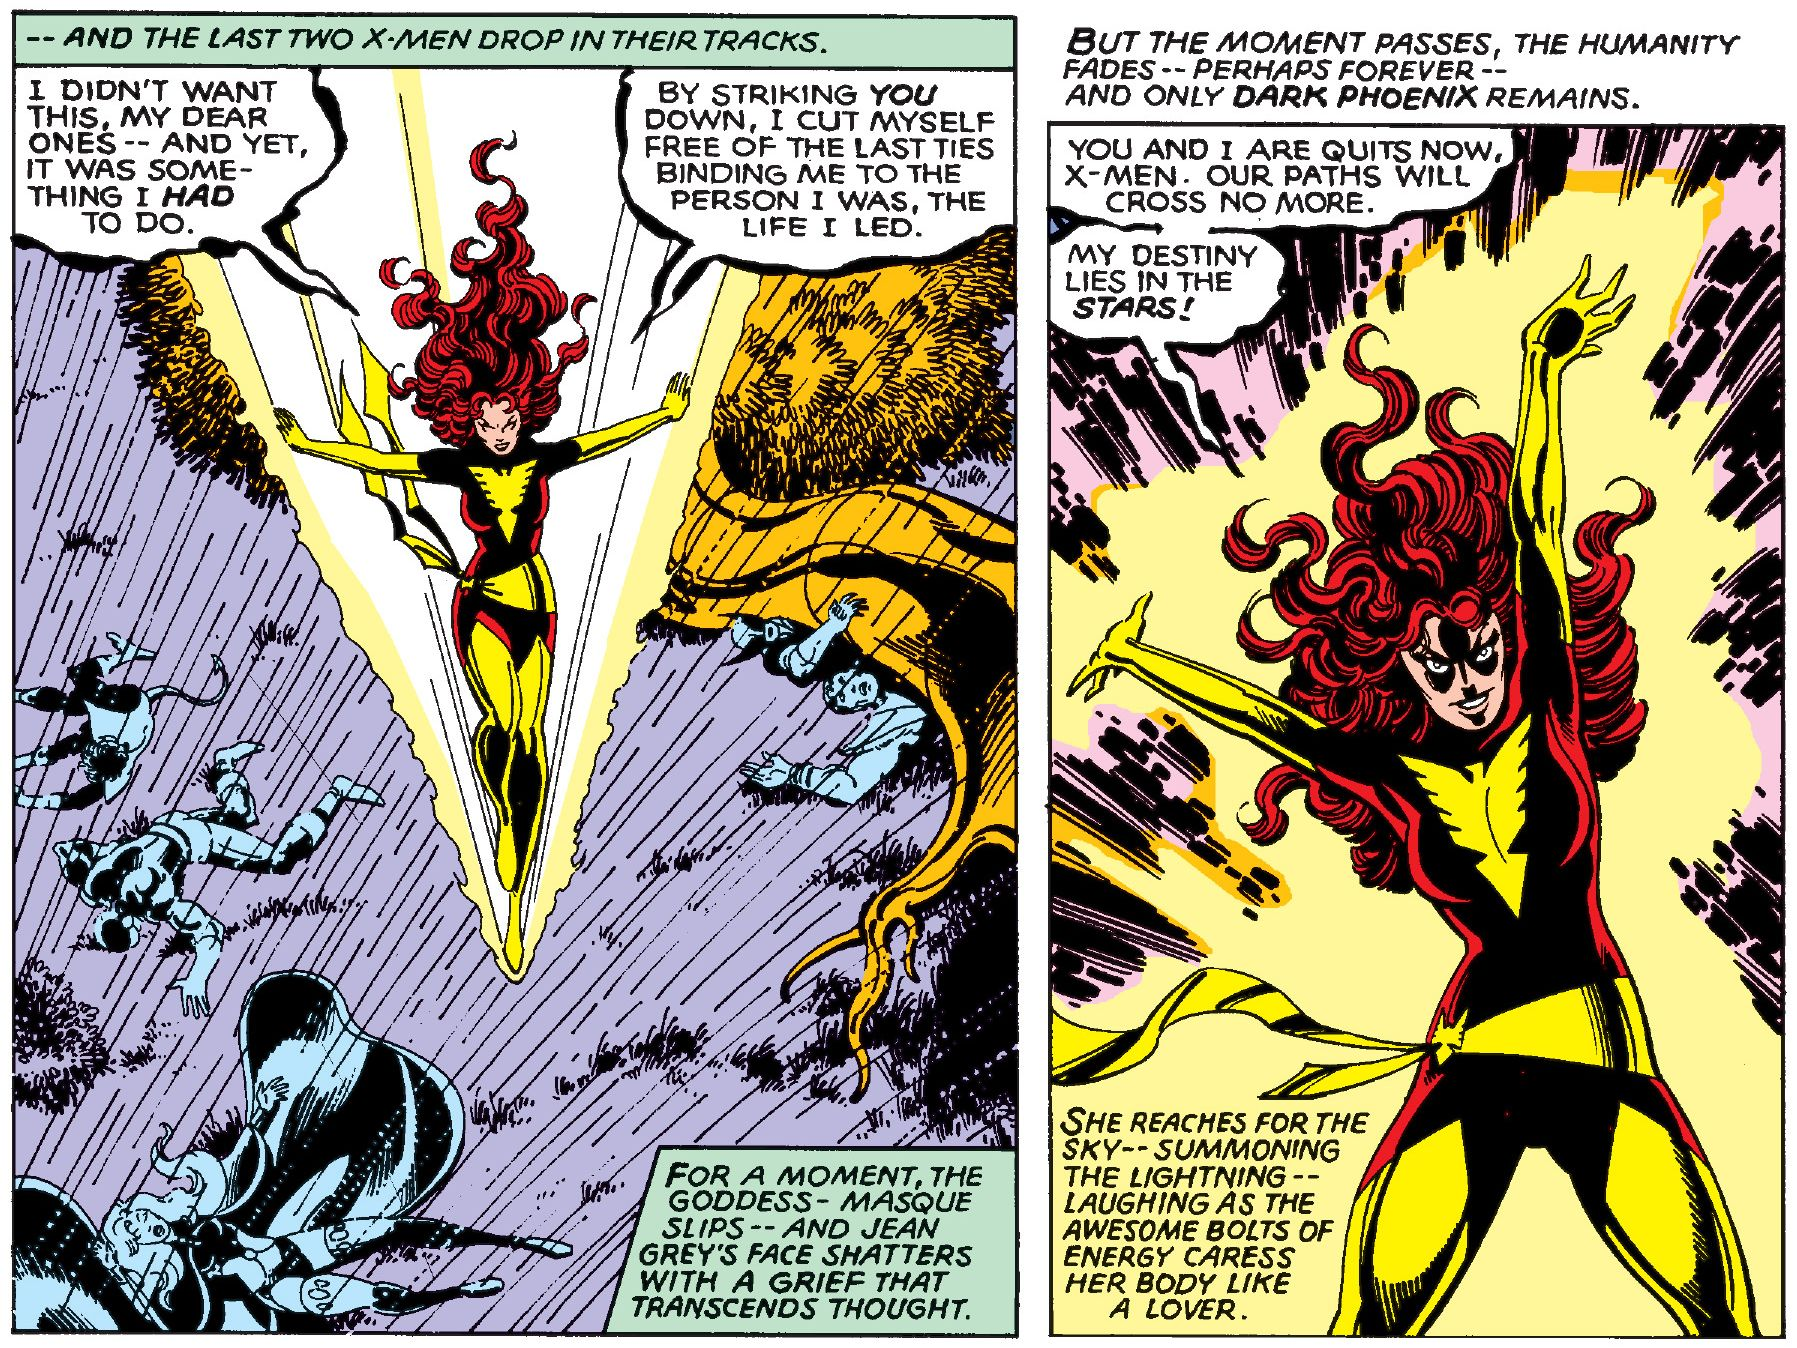 Uncanny X-Men  #135 (Marvel, July 1980), page 7, power compared to the touch of a lover